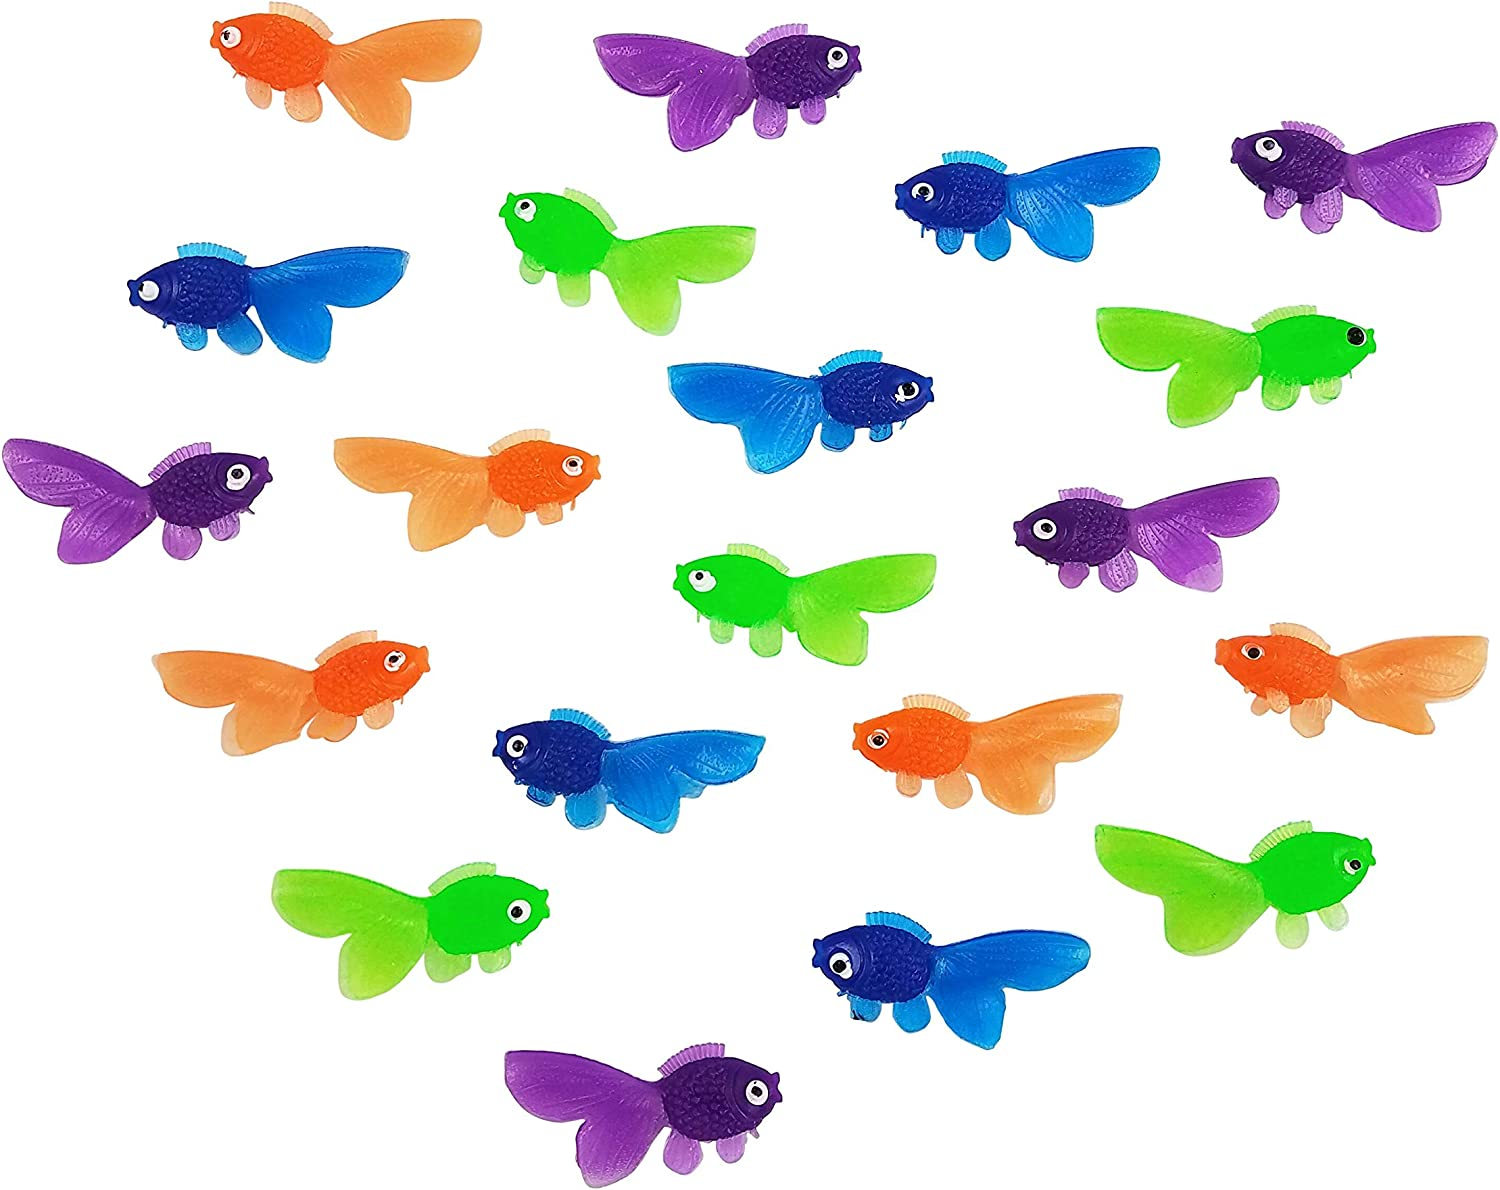 Funeez Plastic Fish Toys Great Fish Party Favors Educational Vinyl Toys for Kids Pack Of 144 Colorful Vinyl Goldfish Toy Fish in Assorted Colors